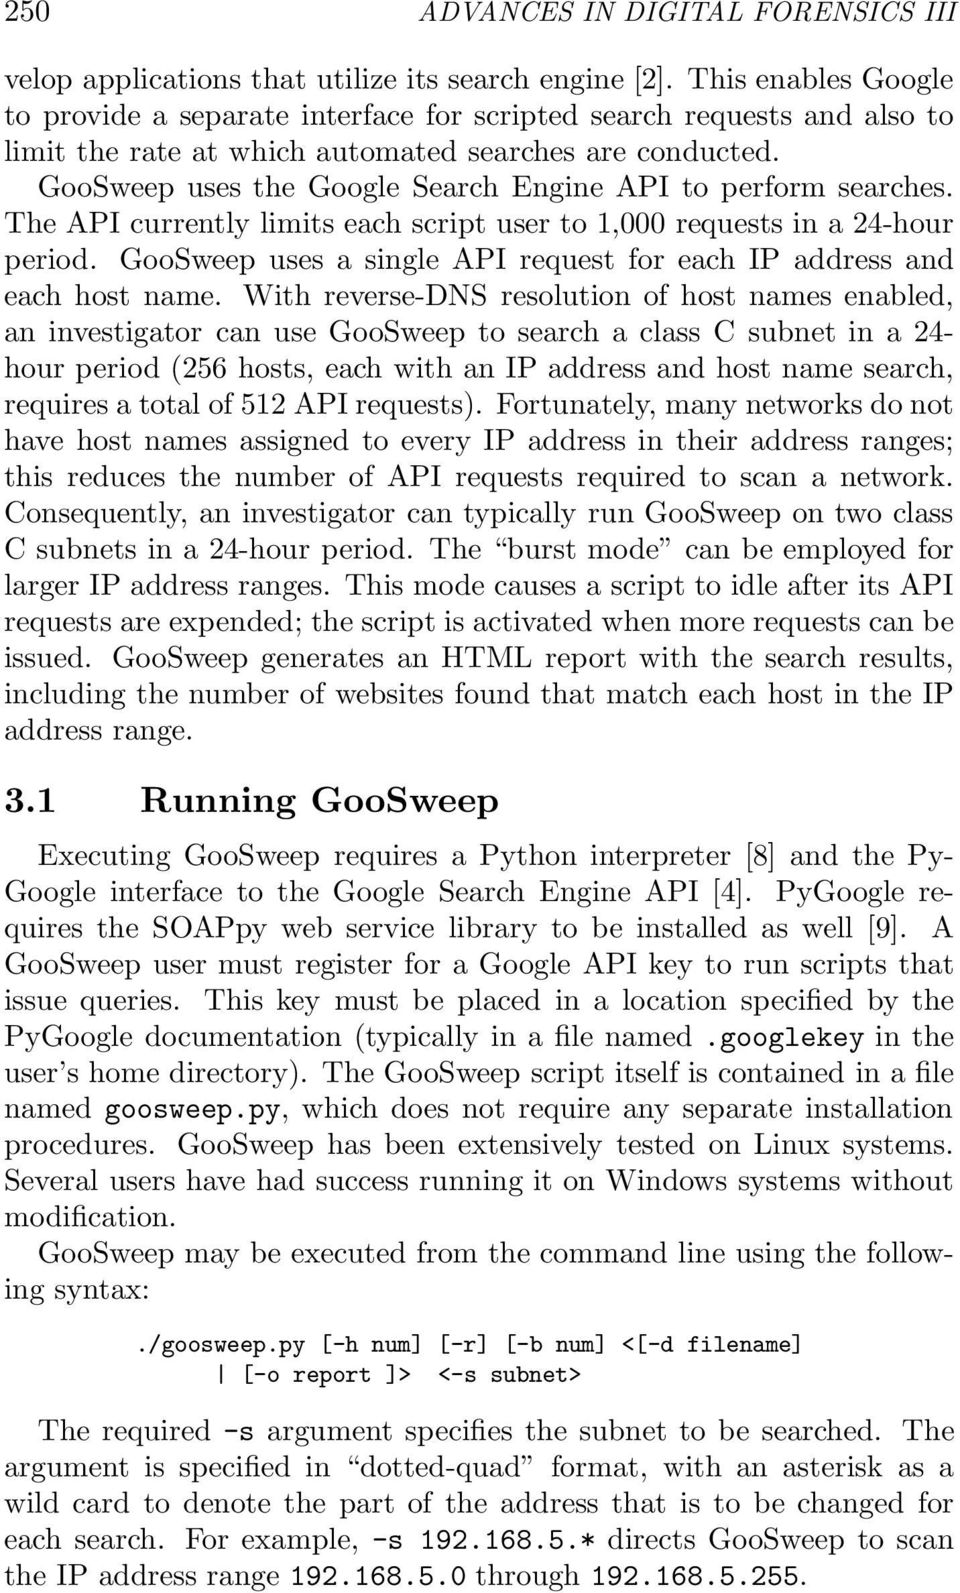 GooSweep uses the Google Search Engine API to perform searches. The API currently limits each script user to 1,000 requests in a 24-hour period.